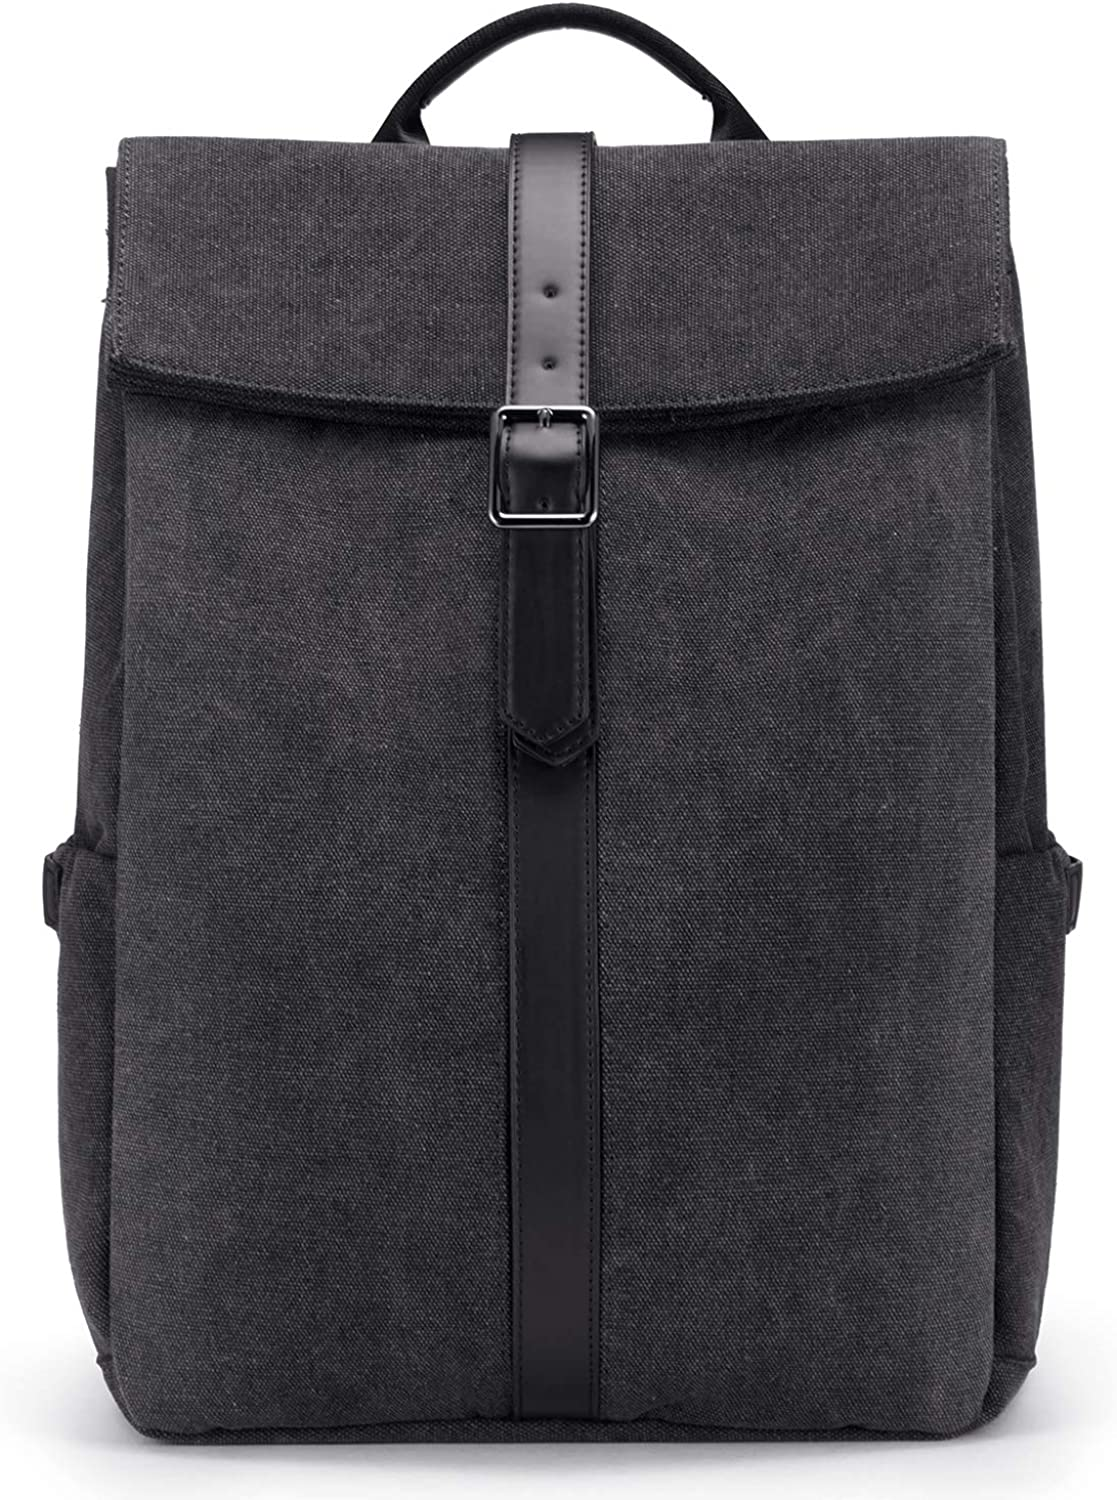 Laptop Backpack 15.6 Inch Stylish School Computer Backpack Casual Daypacks Laptop Bag for Travel/College/Women/Men